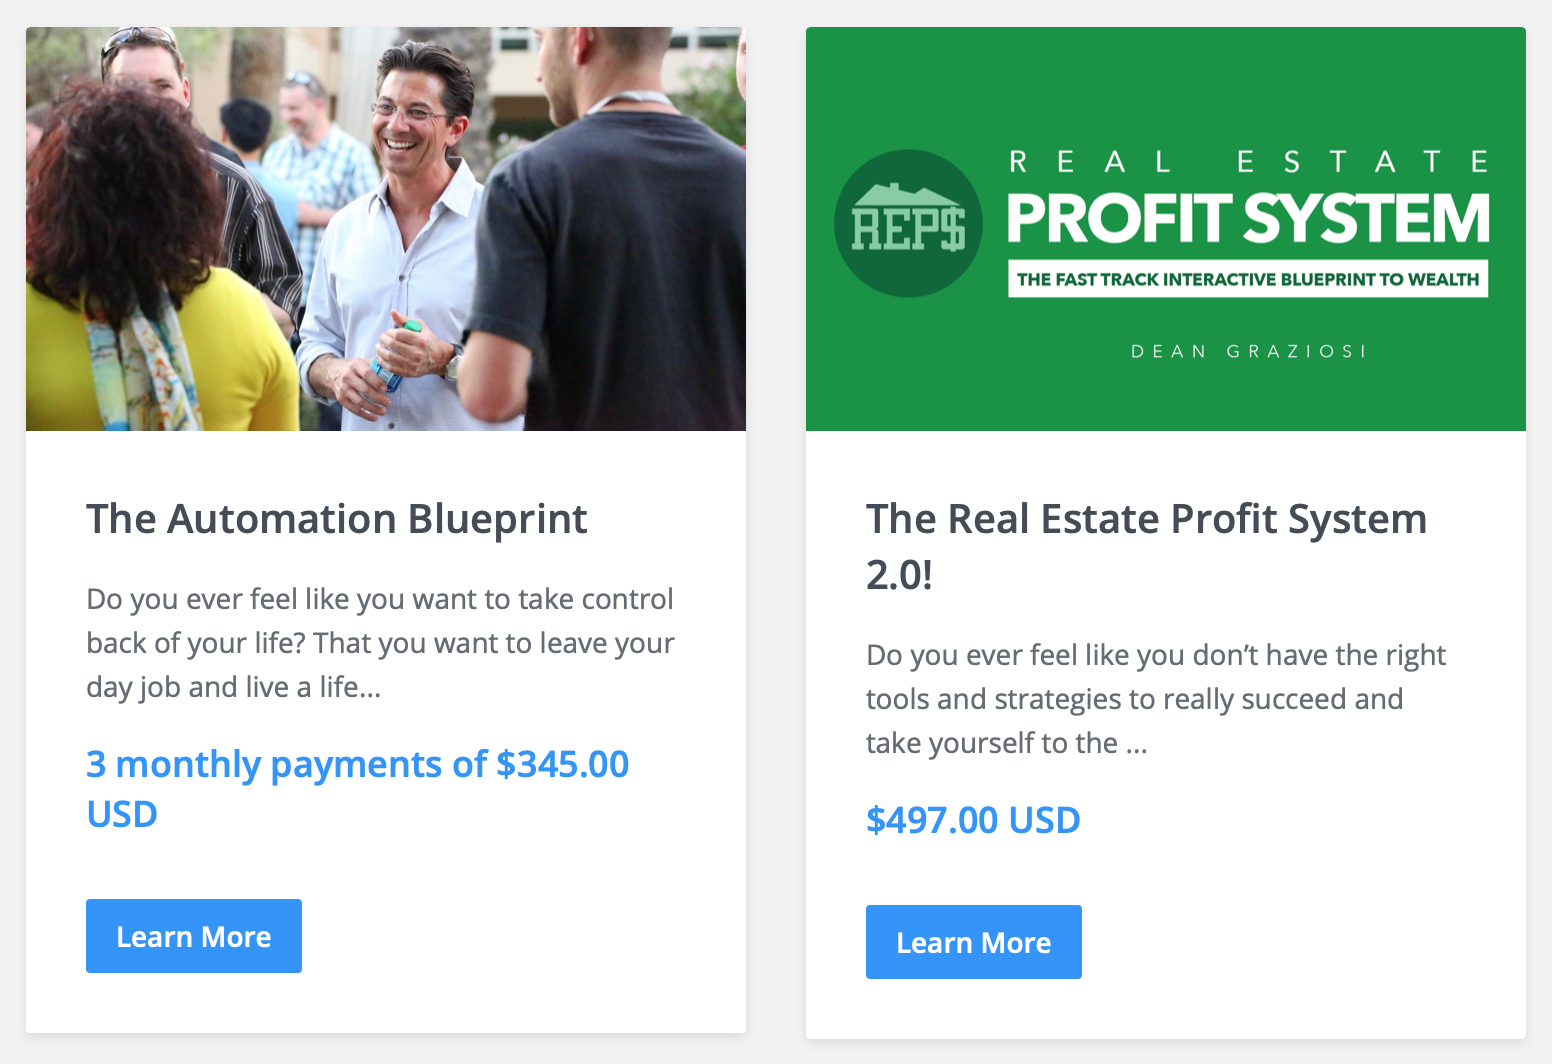 the real estate profit system